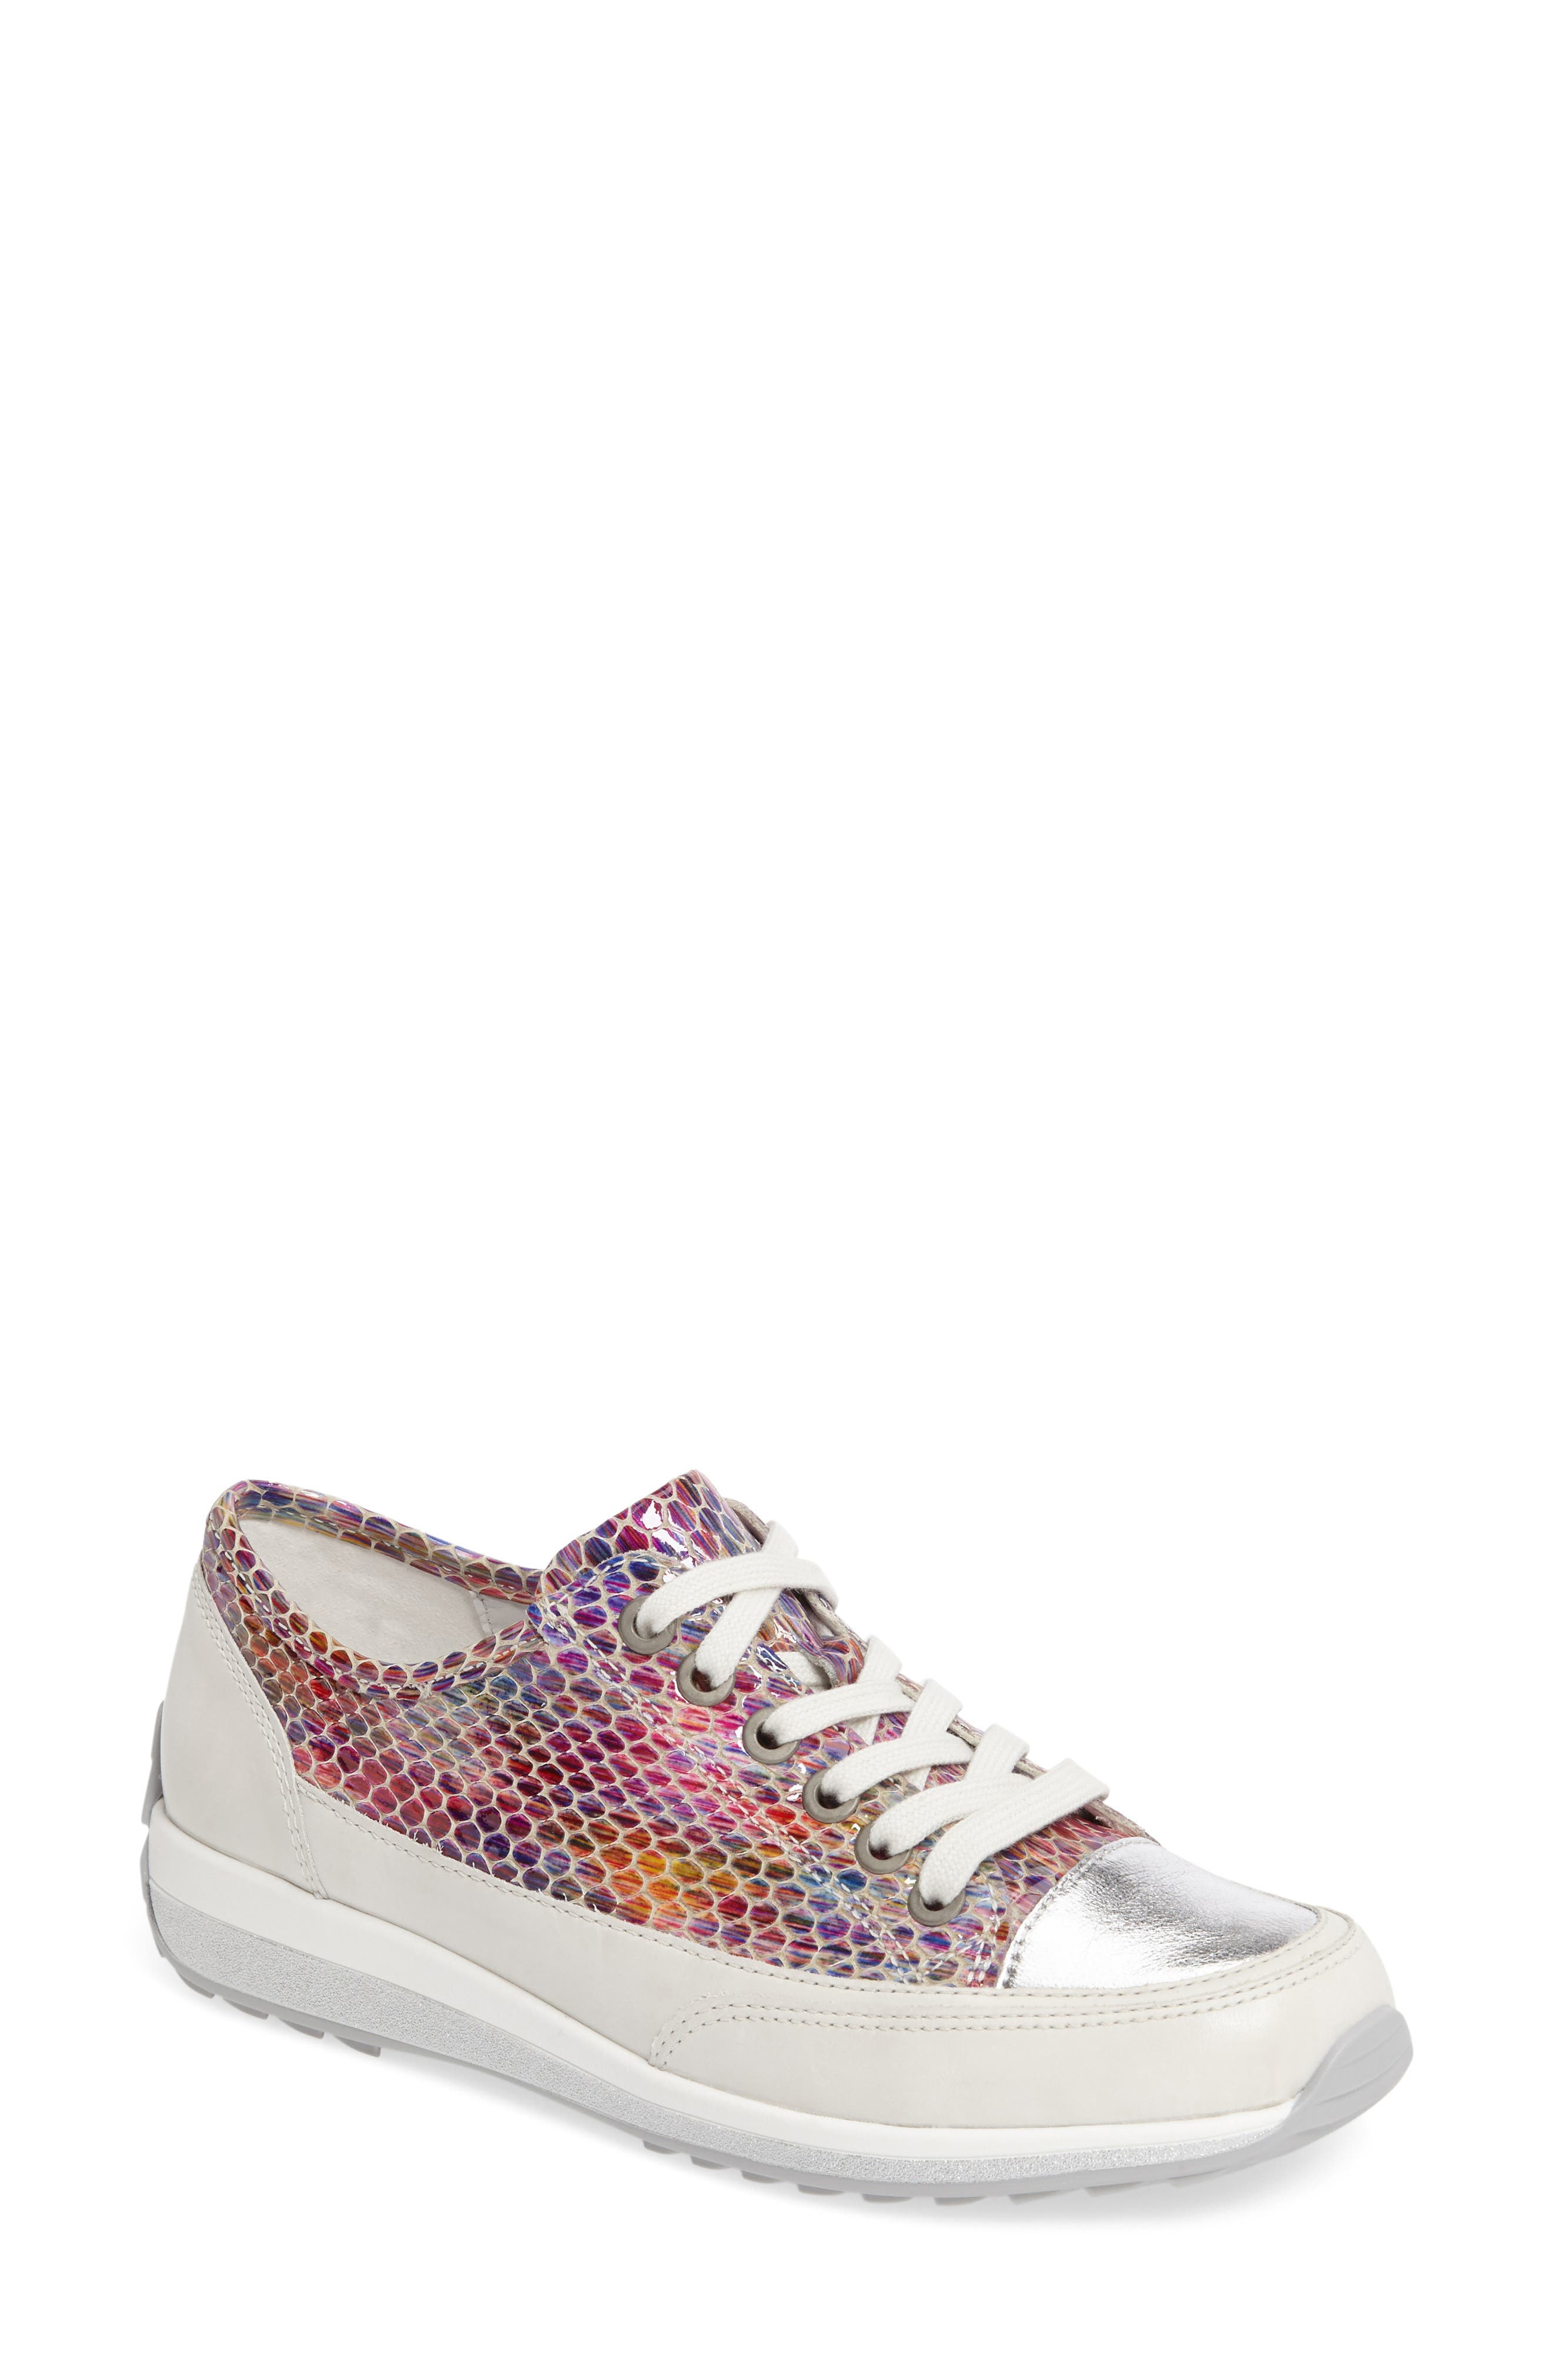 Hermione Sneaker,                             Main thumbnail 1, color,                             WHITE MULTI LEATHER